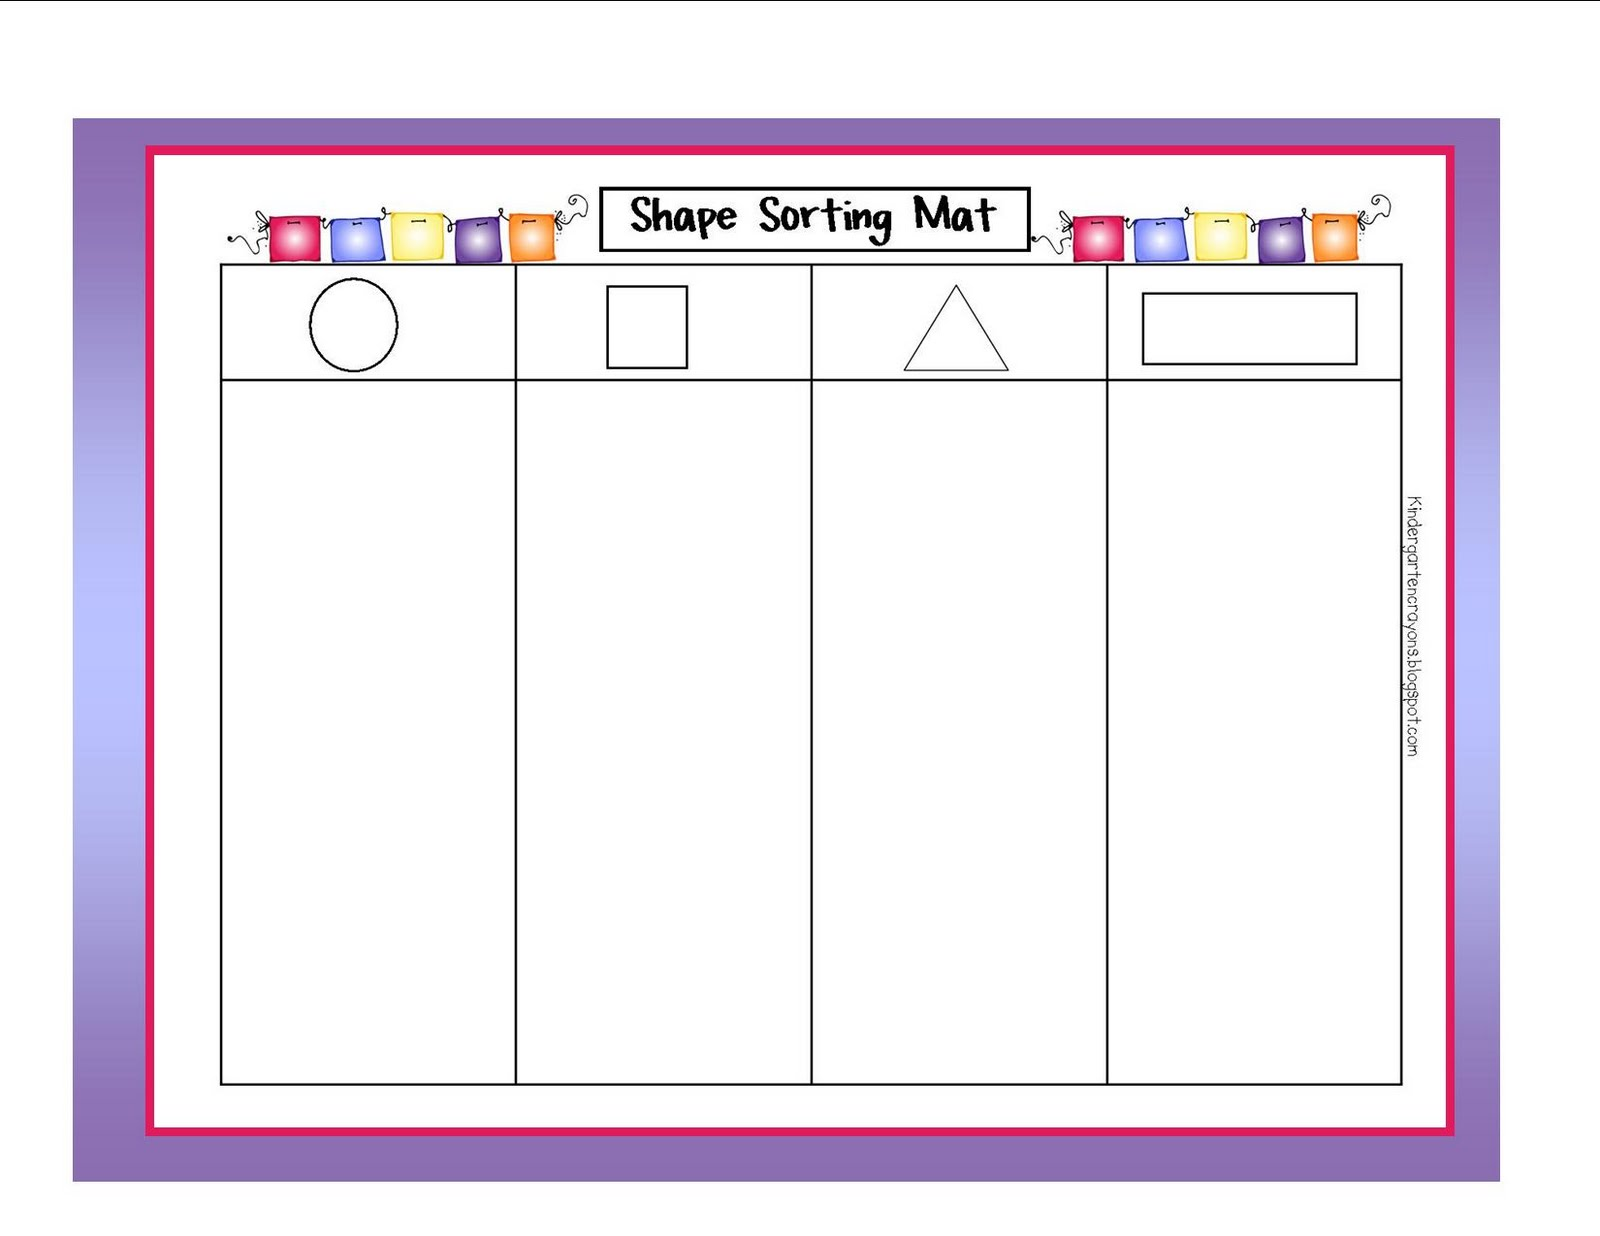 worksheet Sorting Worksheets For Kindergarten kindergarten shape sorting worksheets attribute blocks abdw sorting